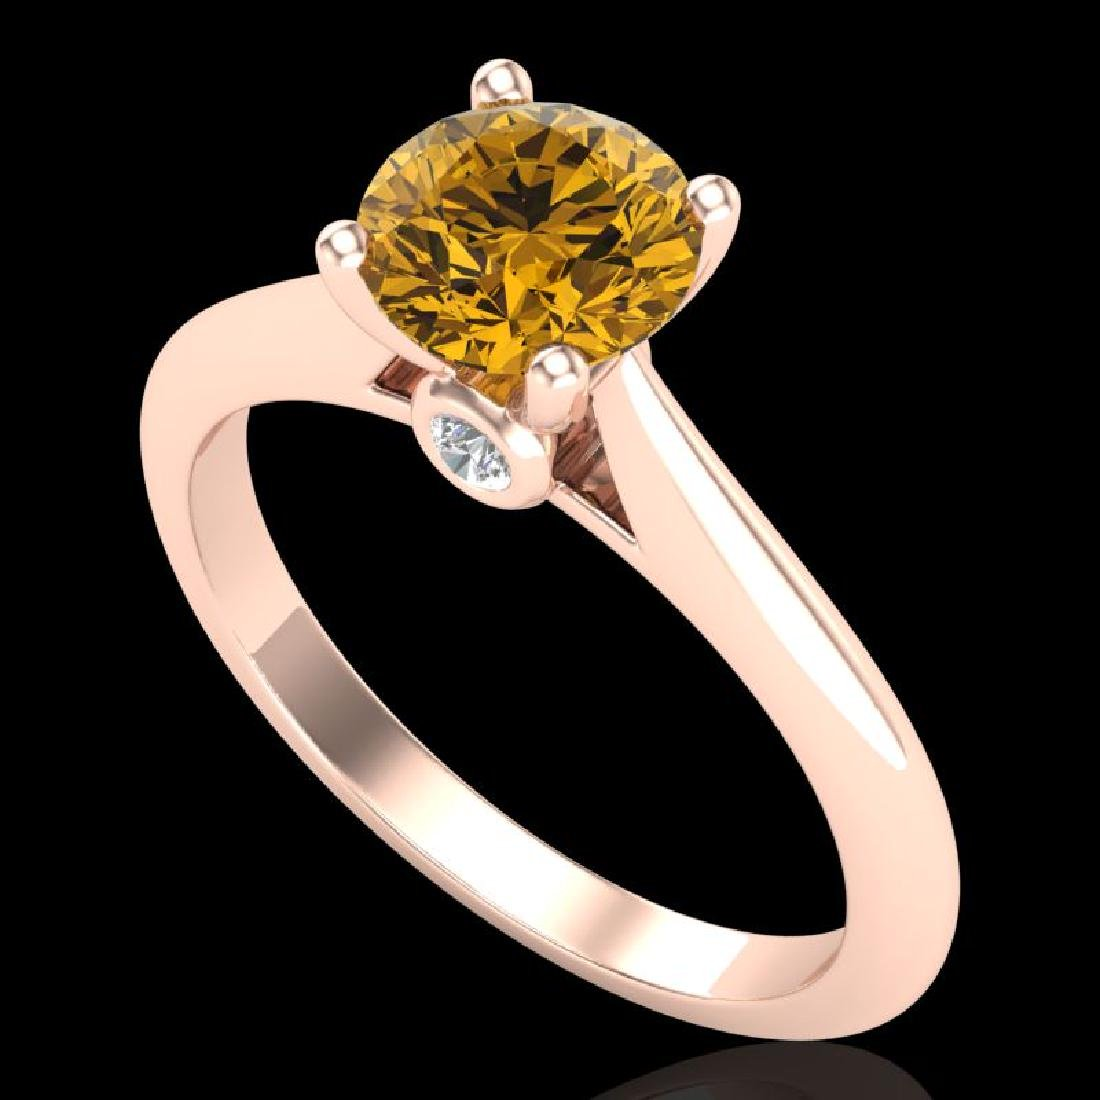 1.08 CTW Intense Fancy Yellow Diamond Engagement Art